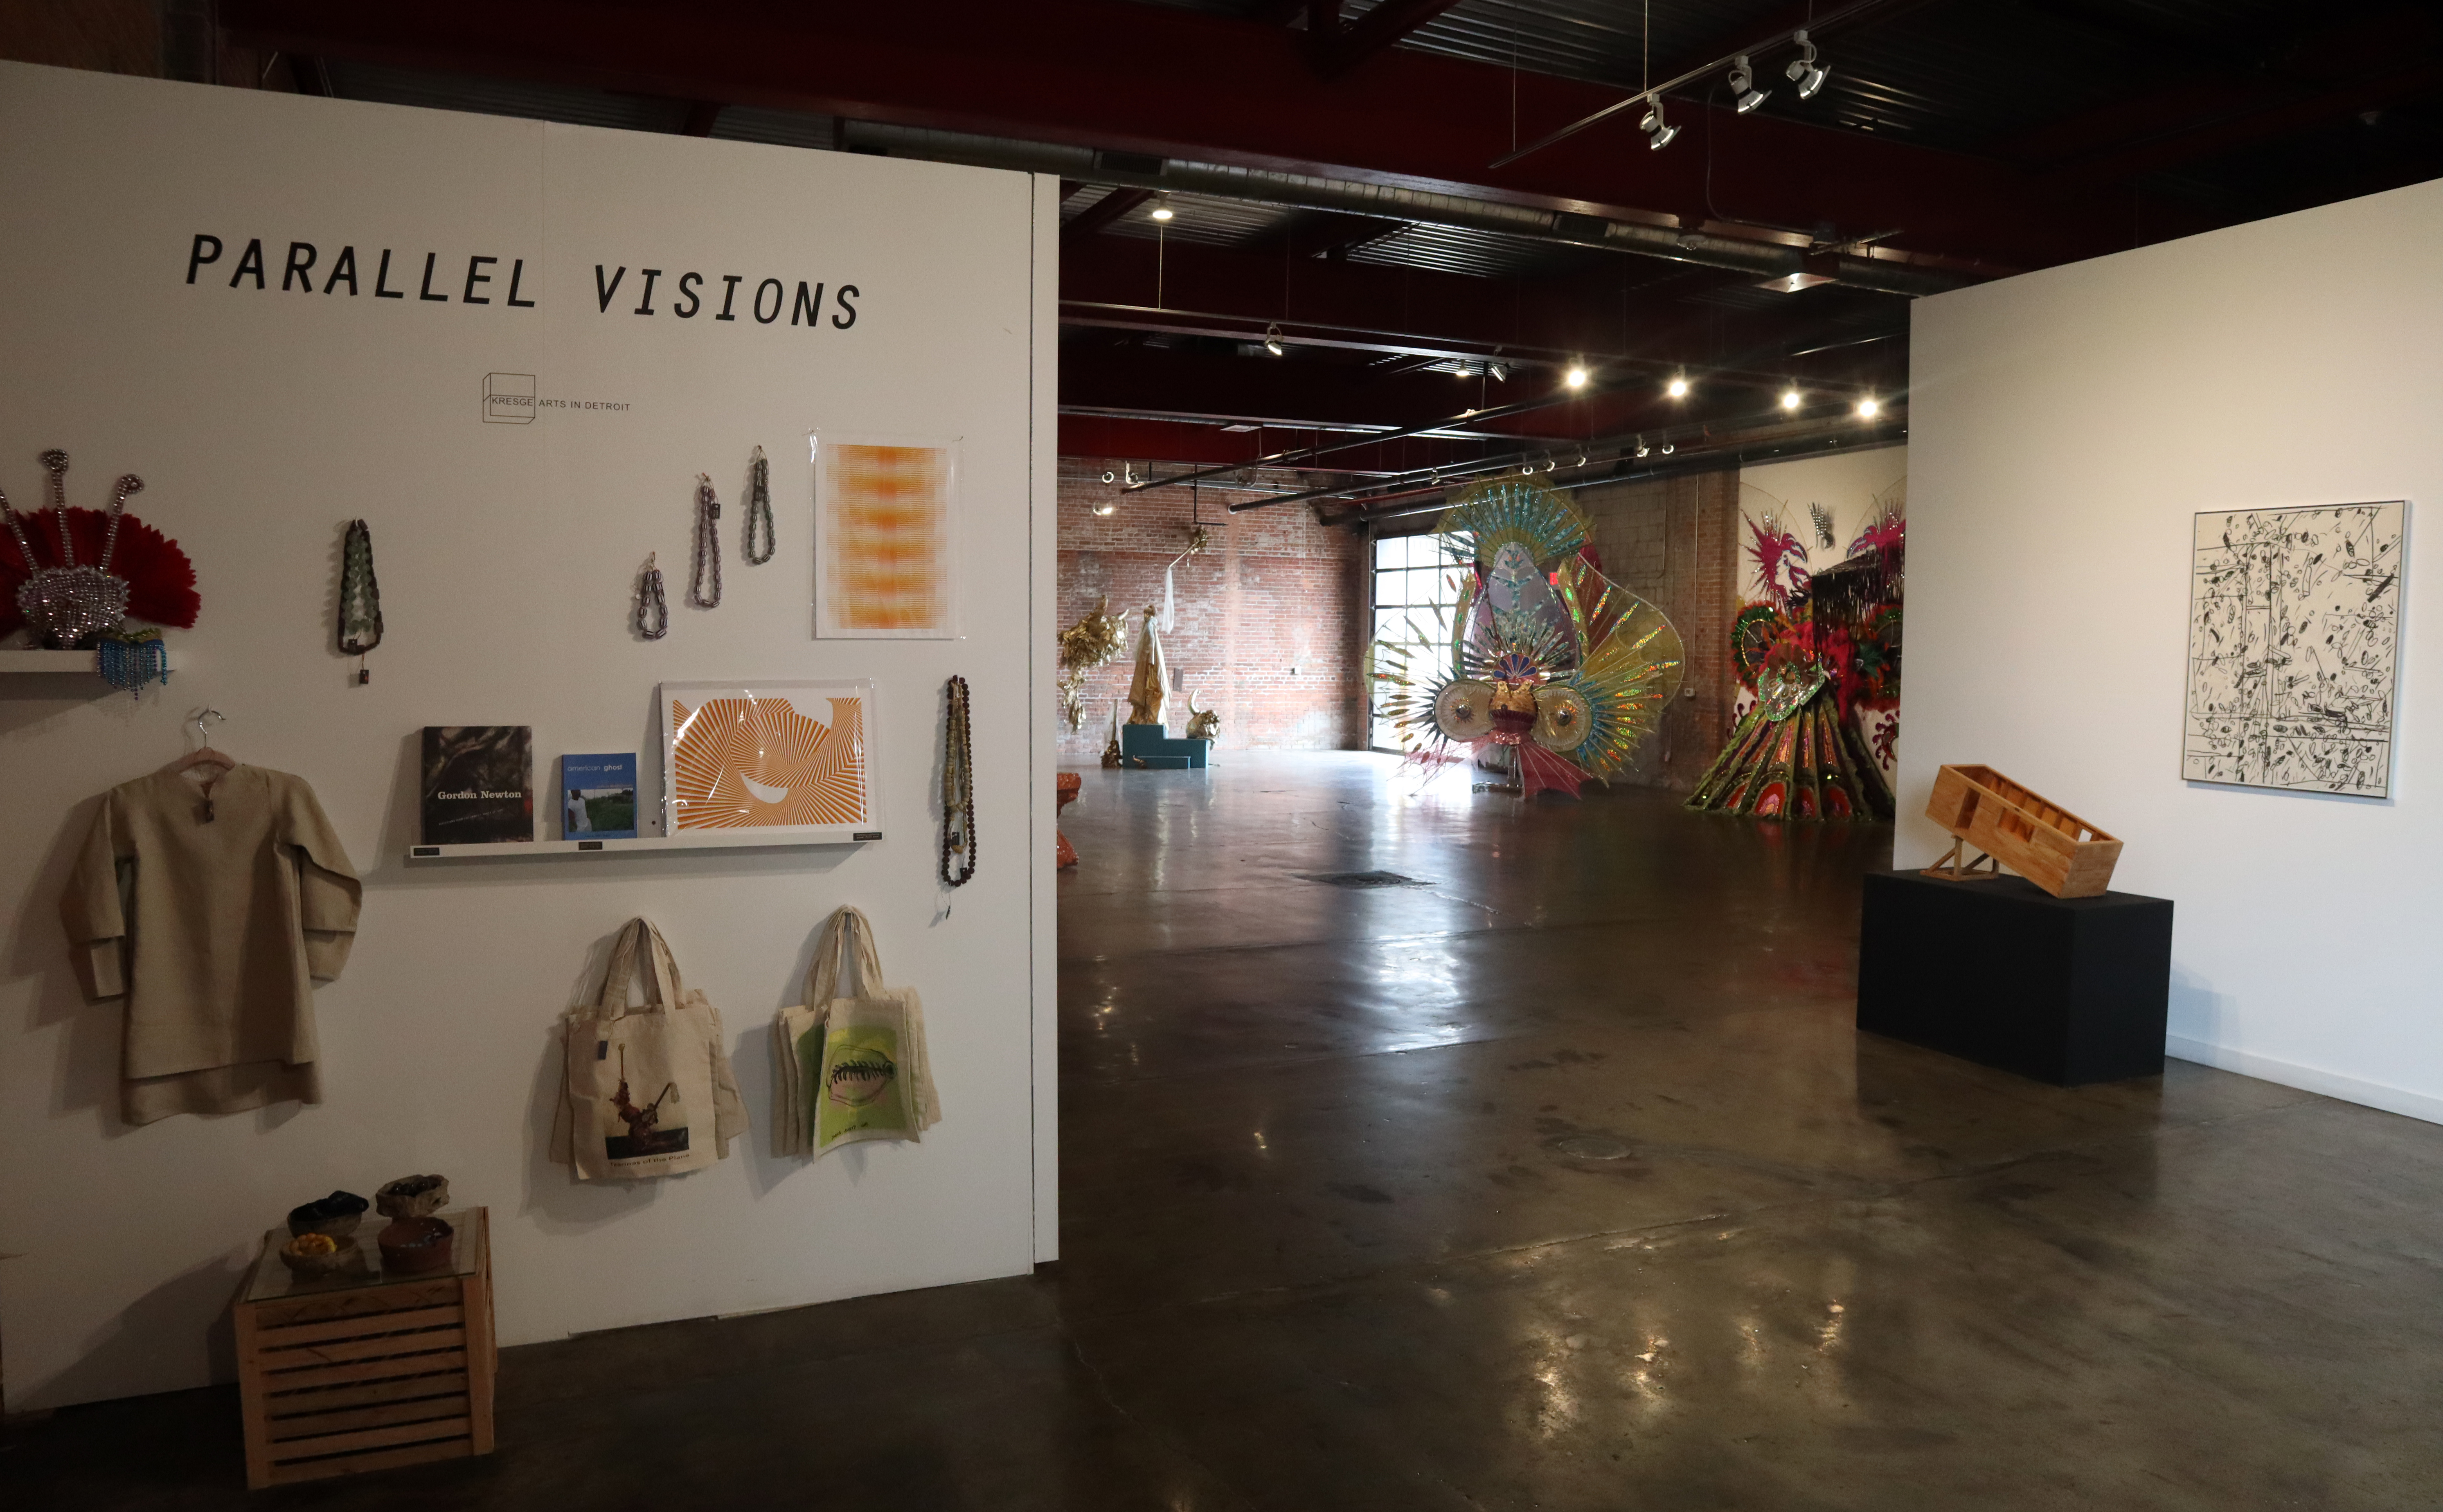 Wasserman Projects exhibit called 'Parallel Visions'